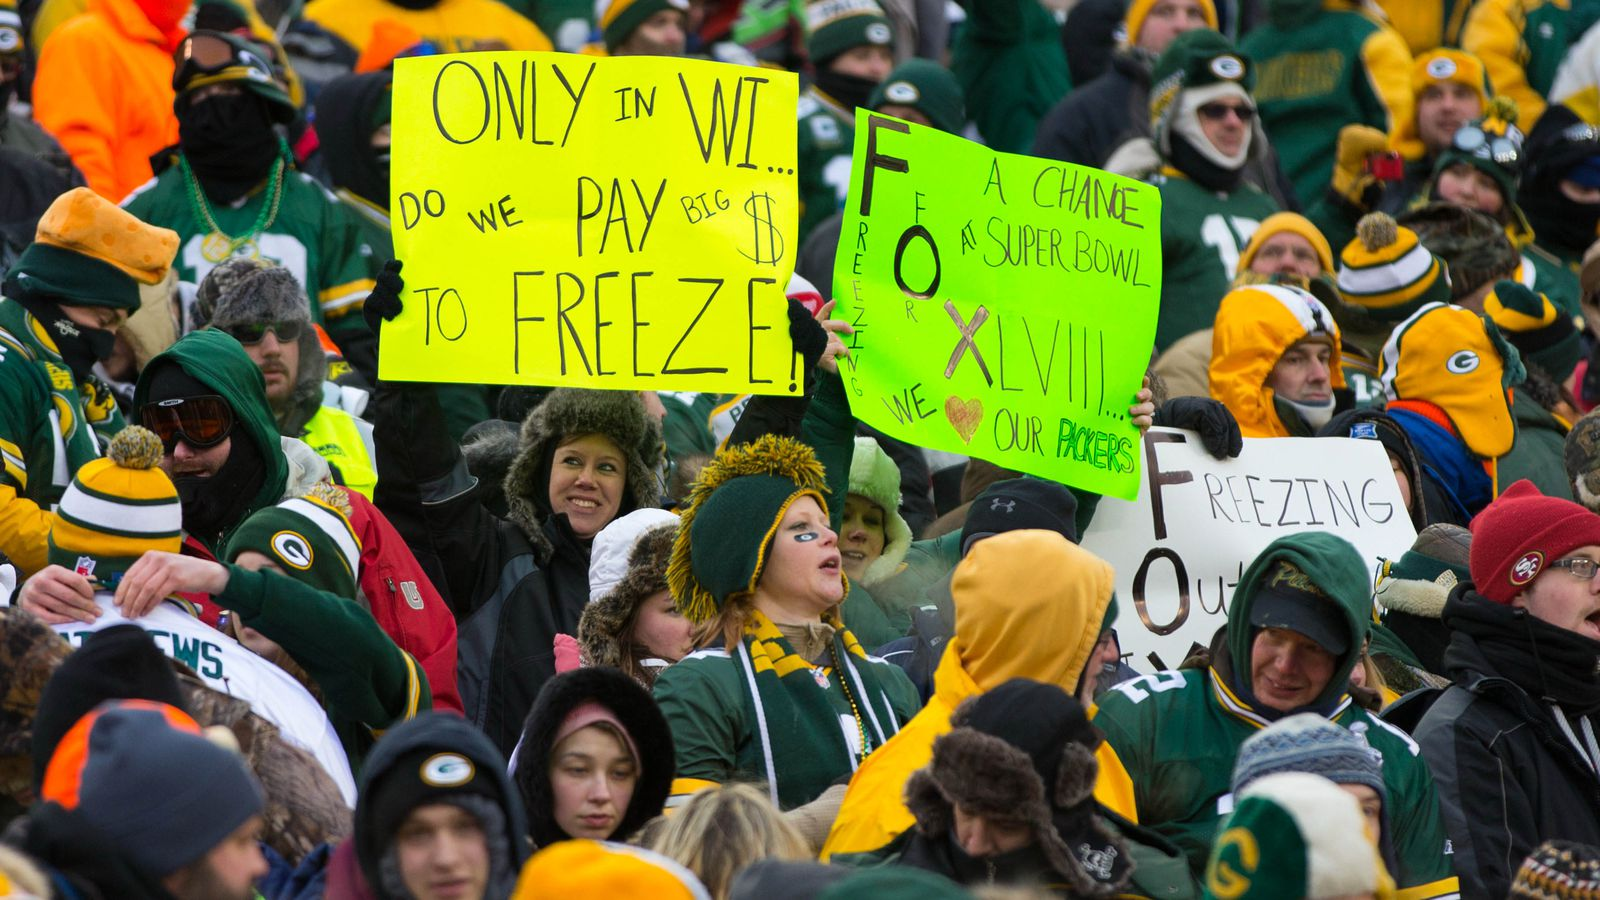 Packers Playoff Ticket Survey Asks Some Odd Questions